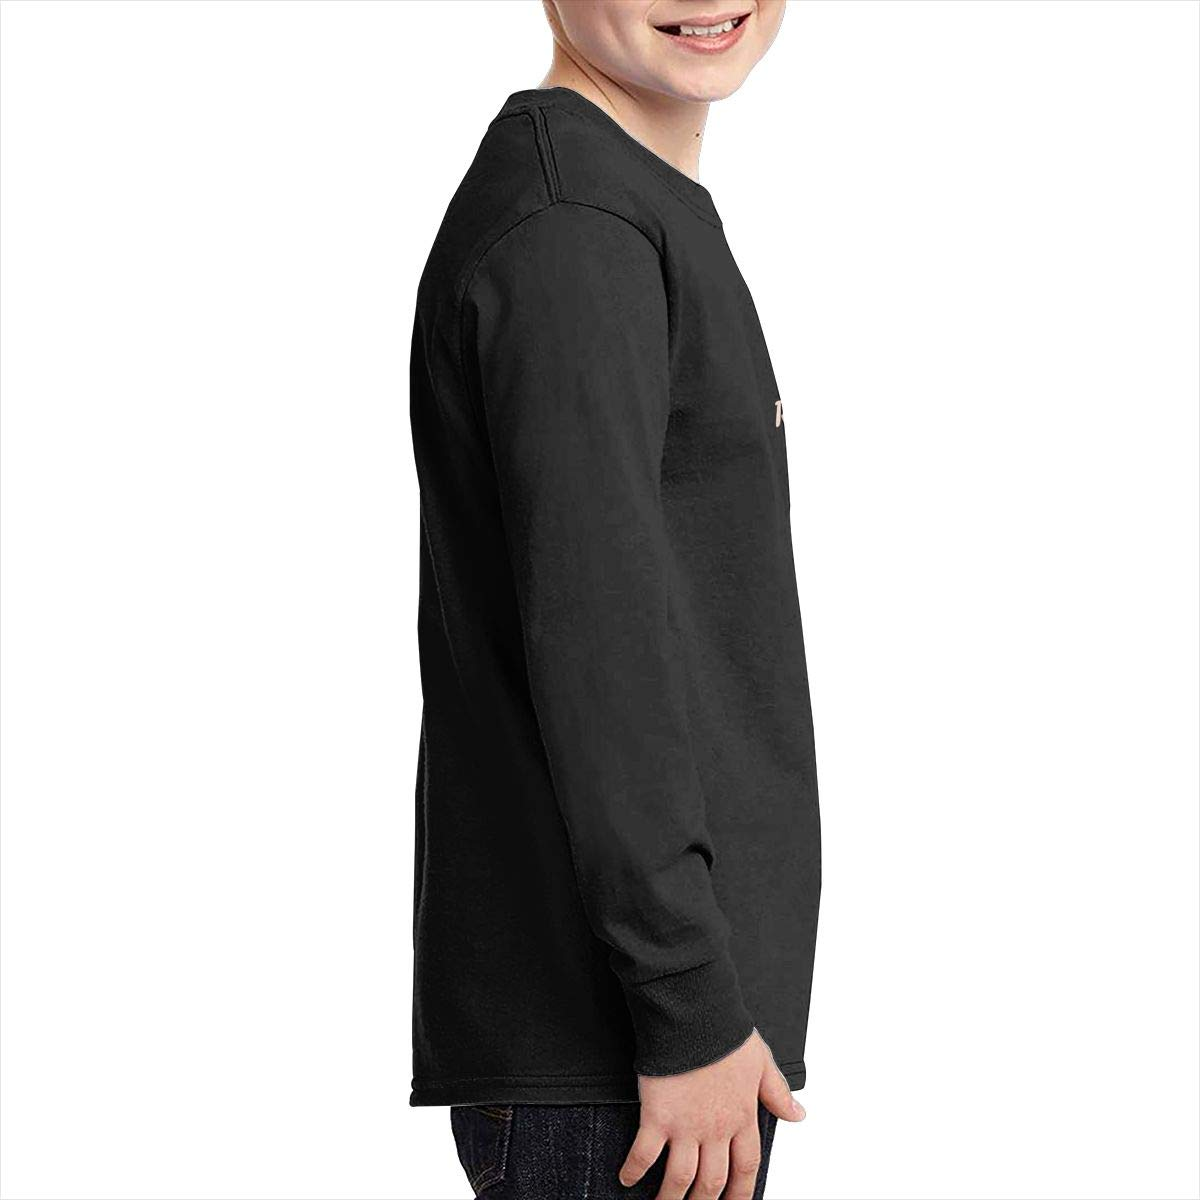 Onlybabycare Funny Cute Slow Lazy Relaxed Sloth Boys Girls Long Sleeve Moisture Wicking Athletic T Shirts